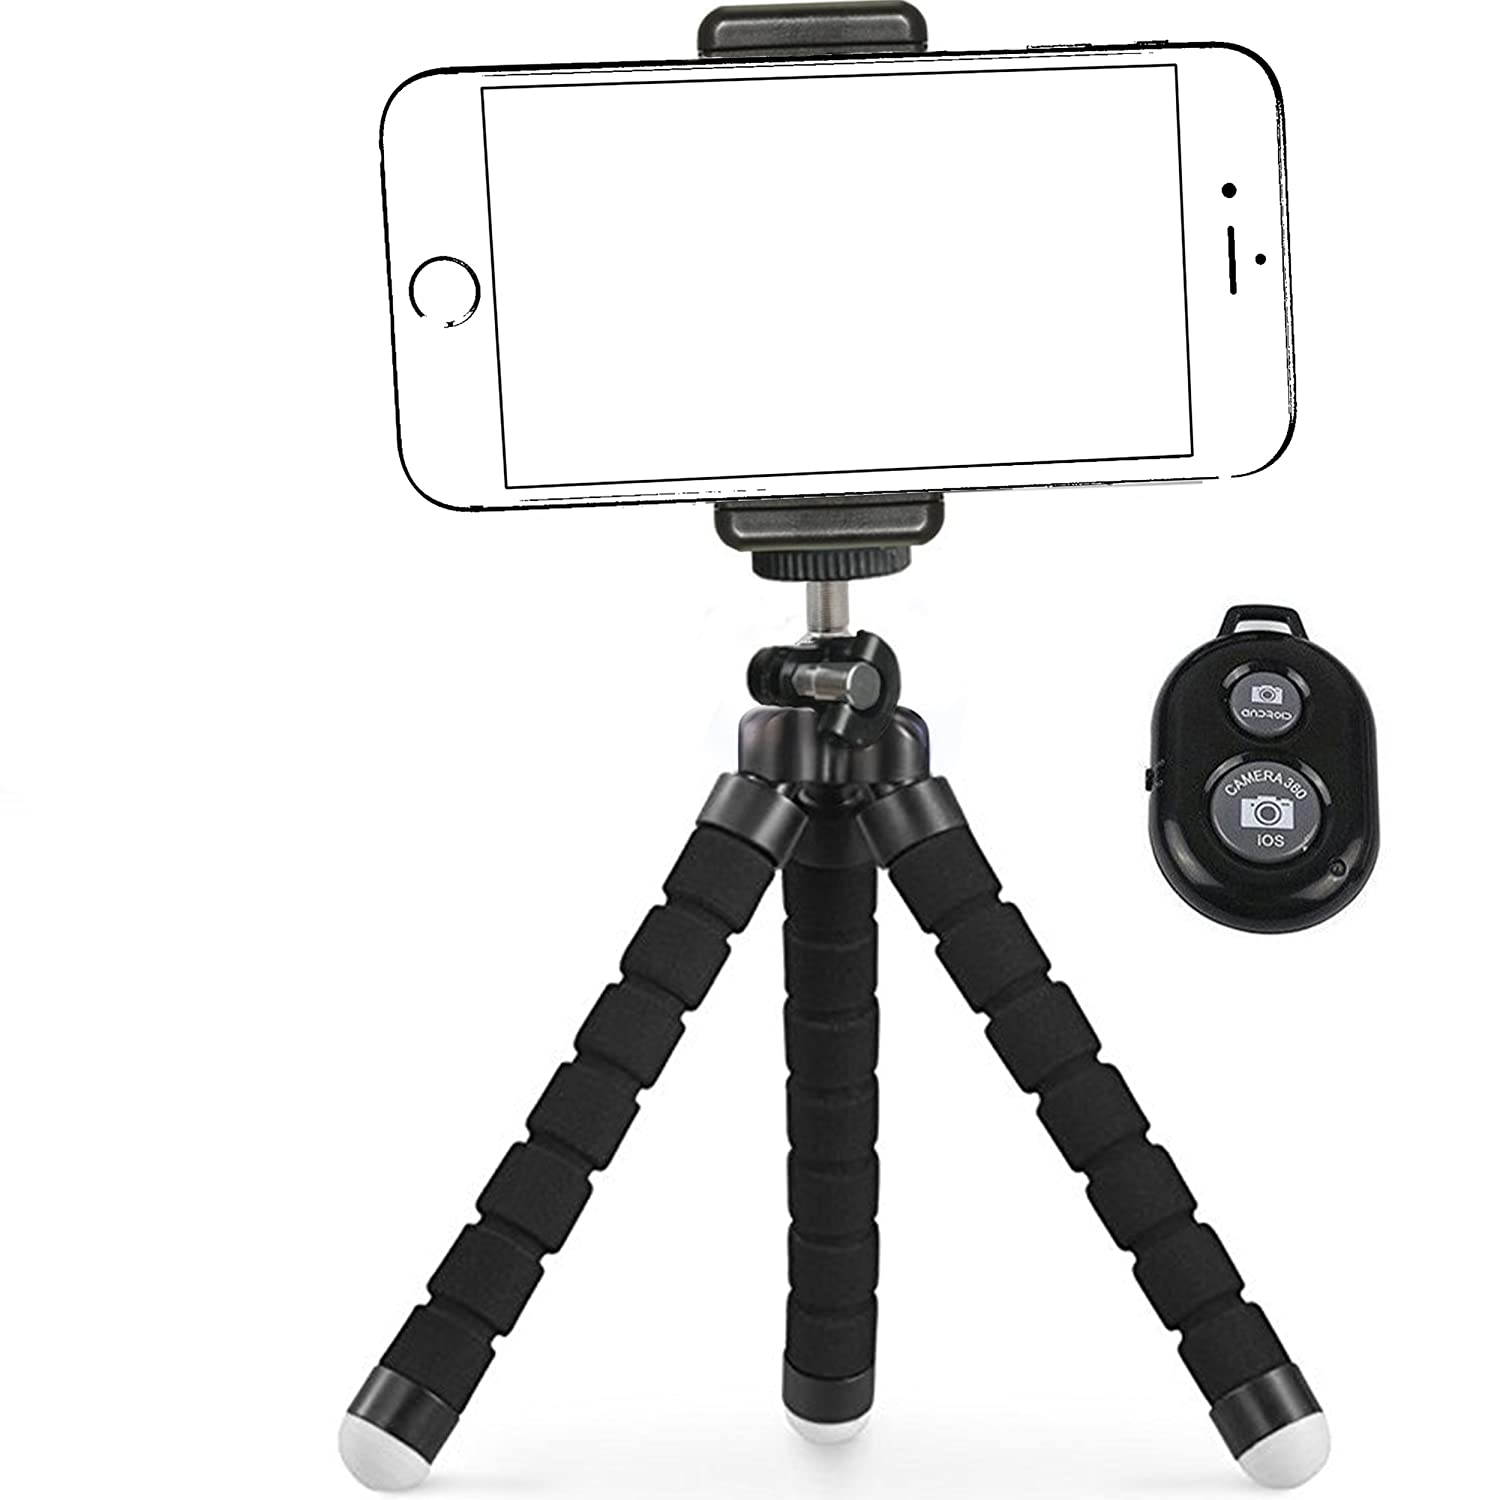 Details about IPhone Tripod,By Ailun,Tripod mount/stand,Phone  Holder,Small\u0026Light,for